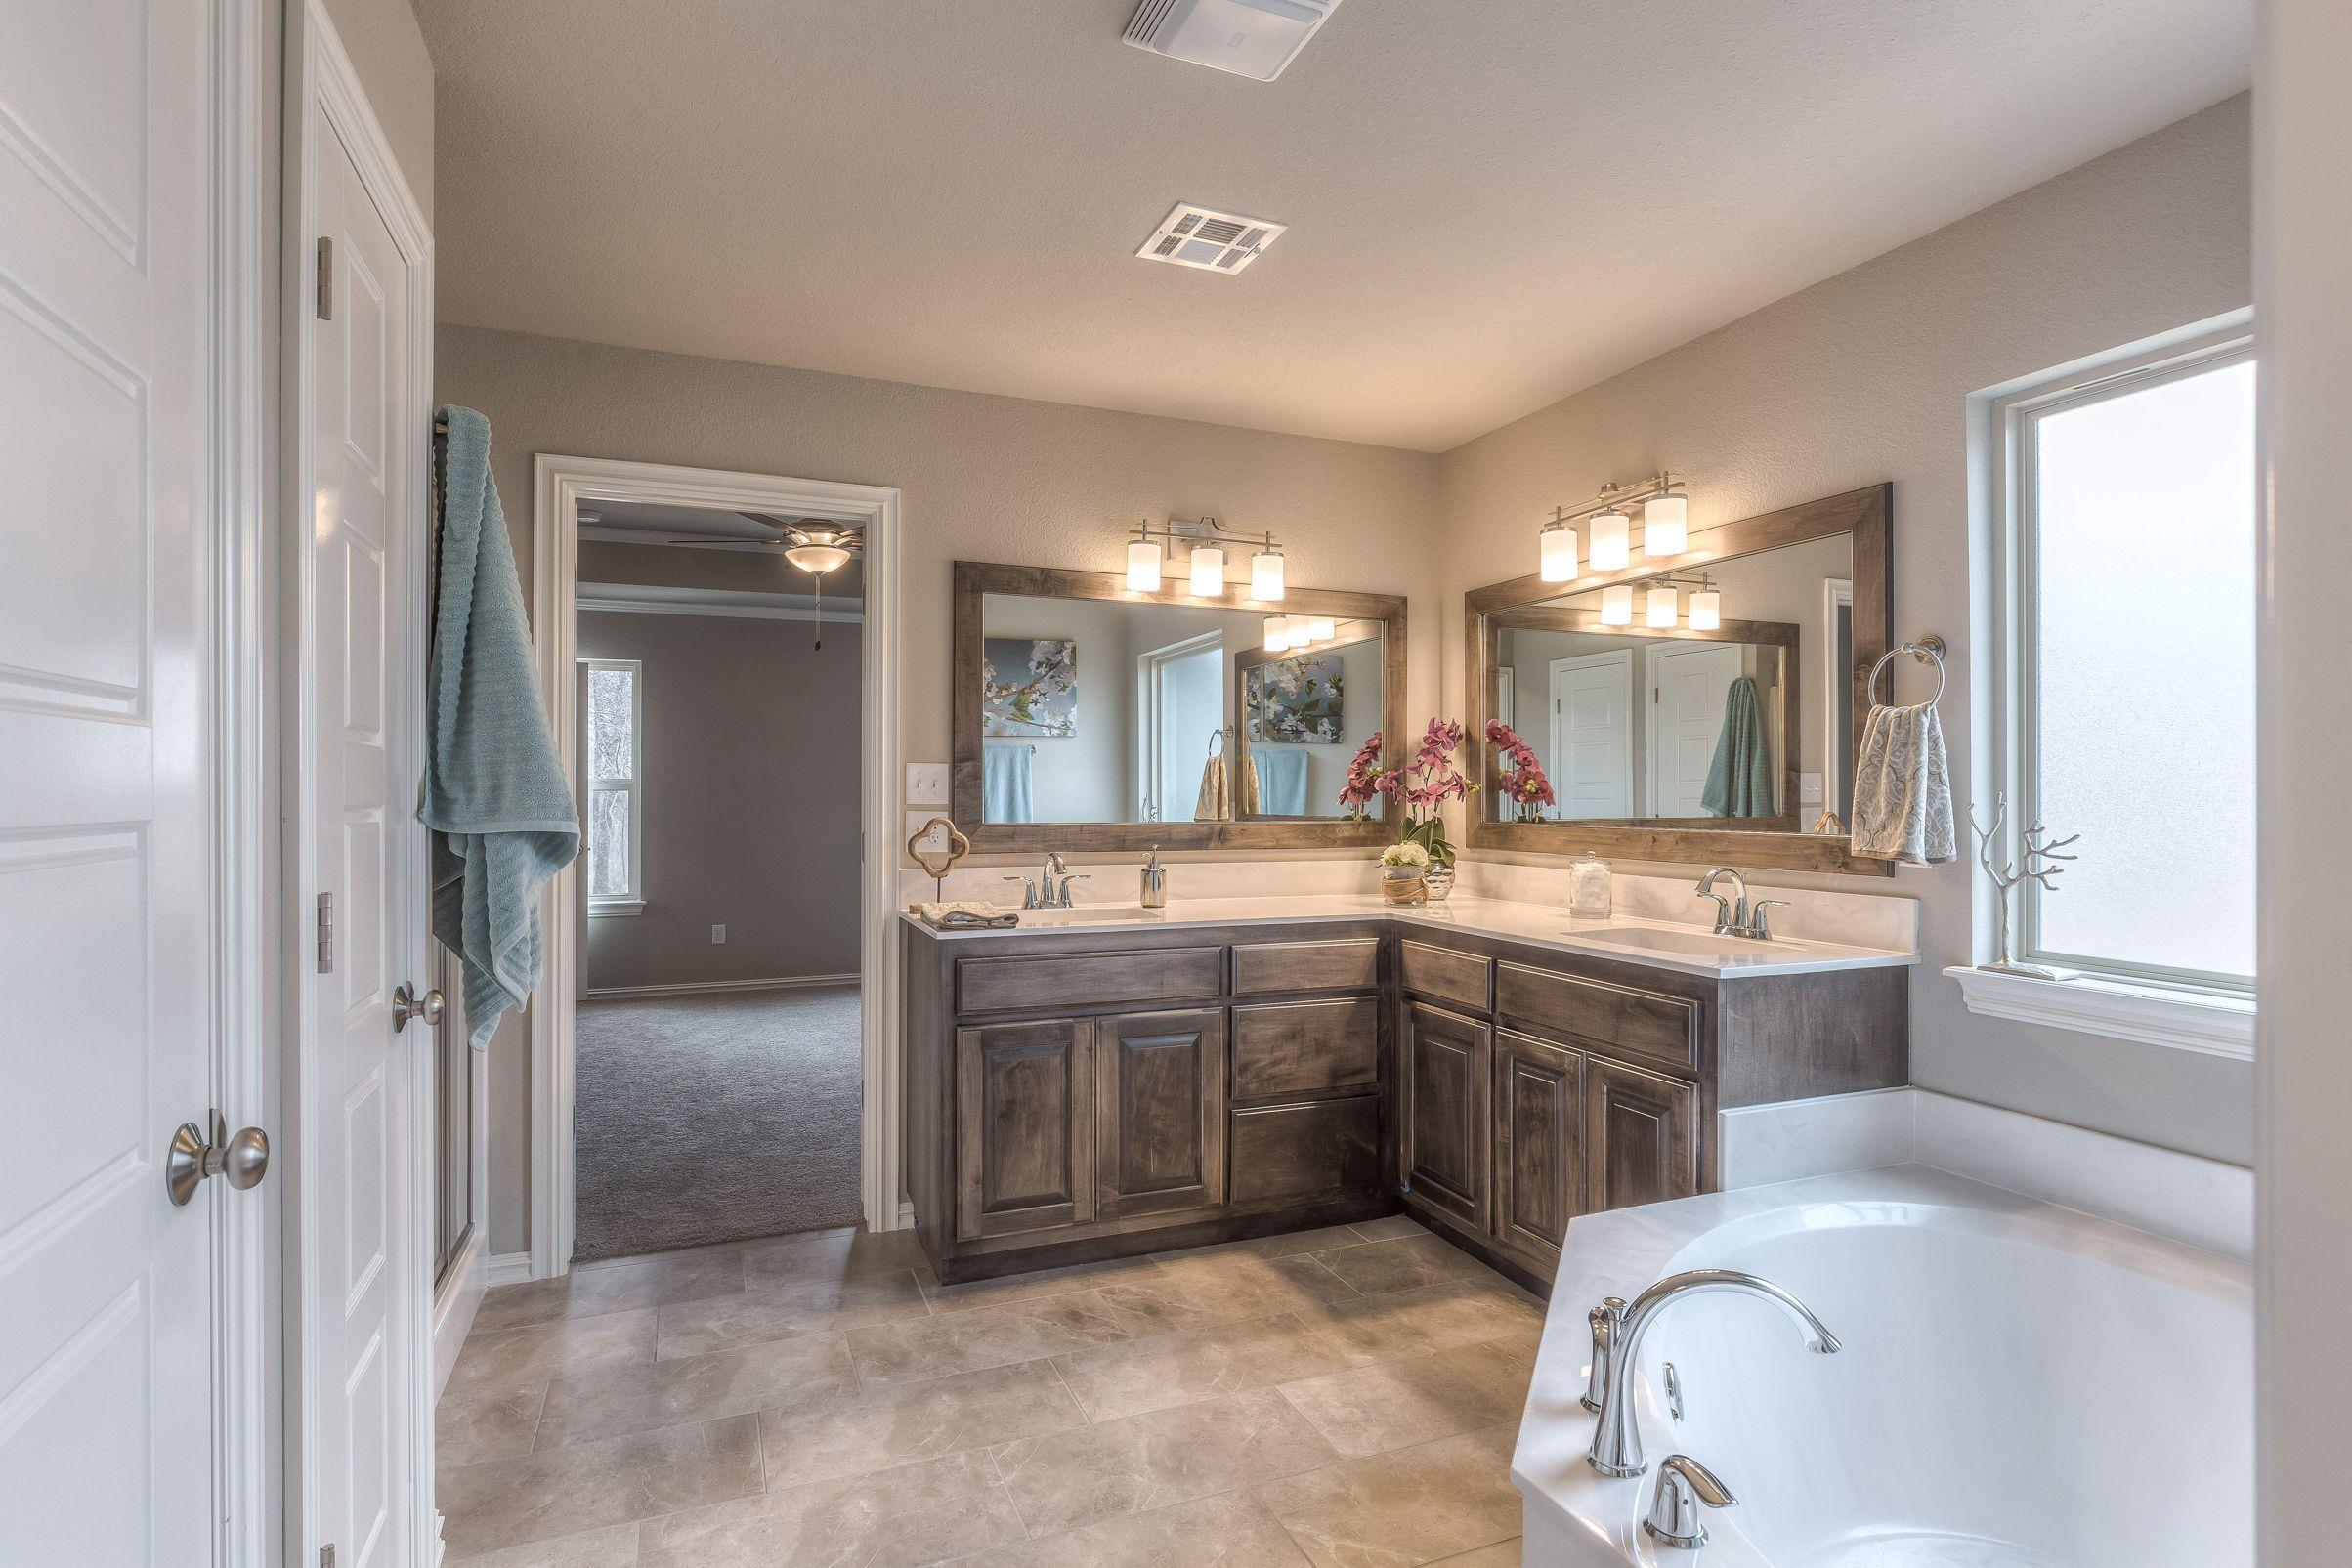 Bathroom featured in the Hampton IV 3C By Concept Builders, Inc in Tulsa, OK